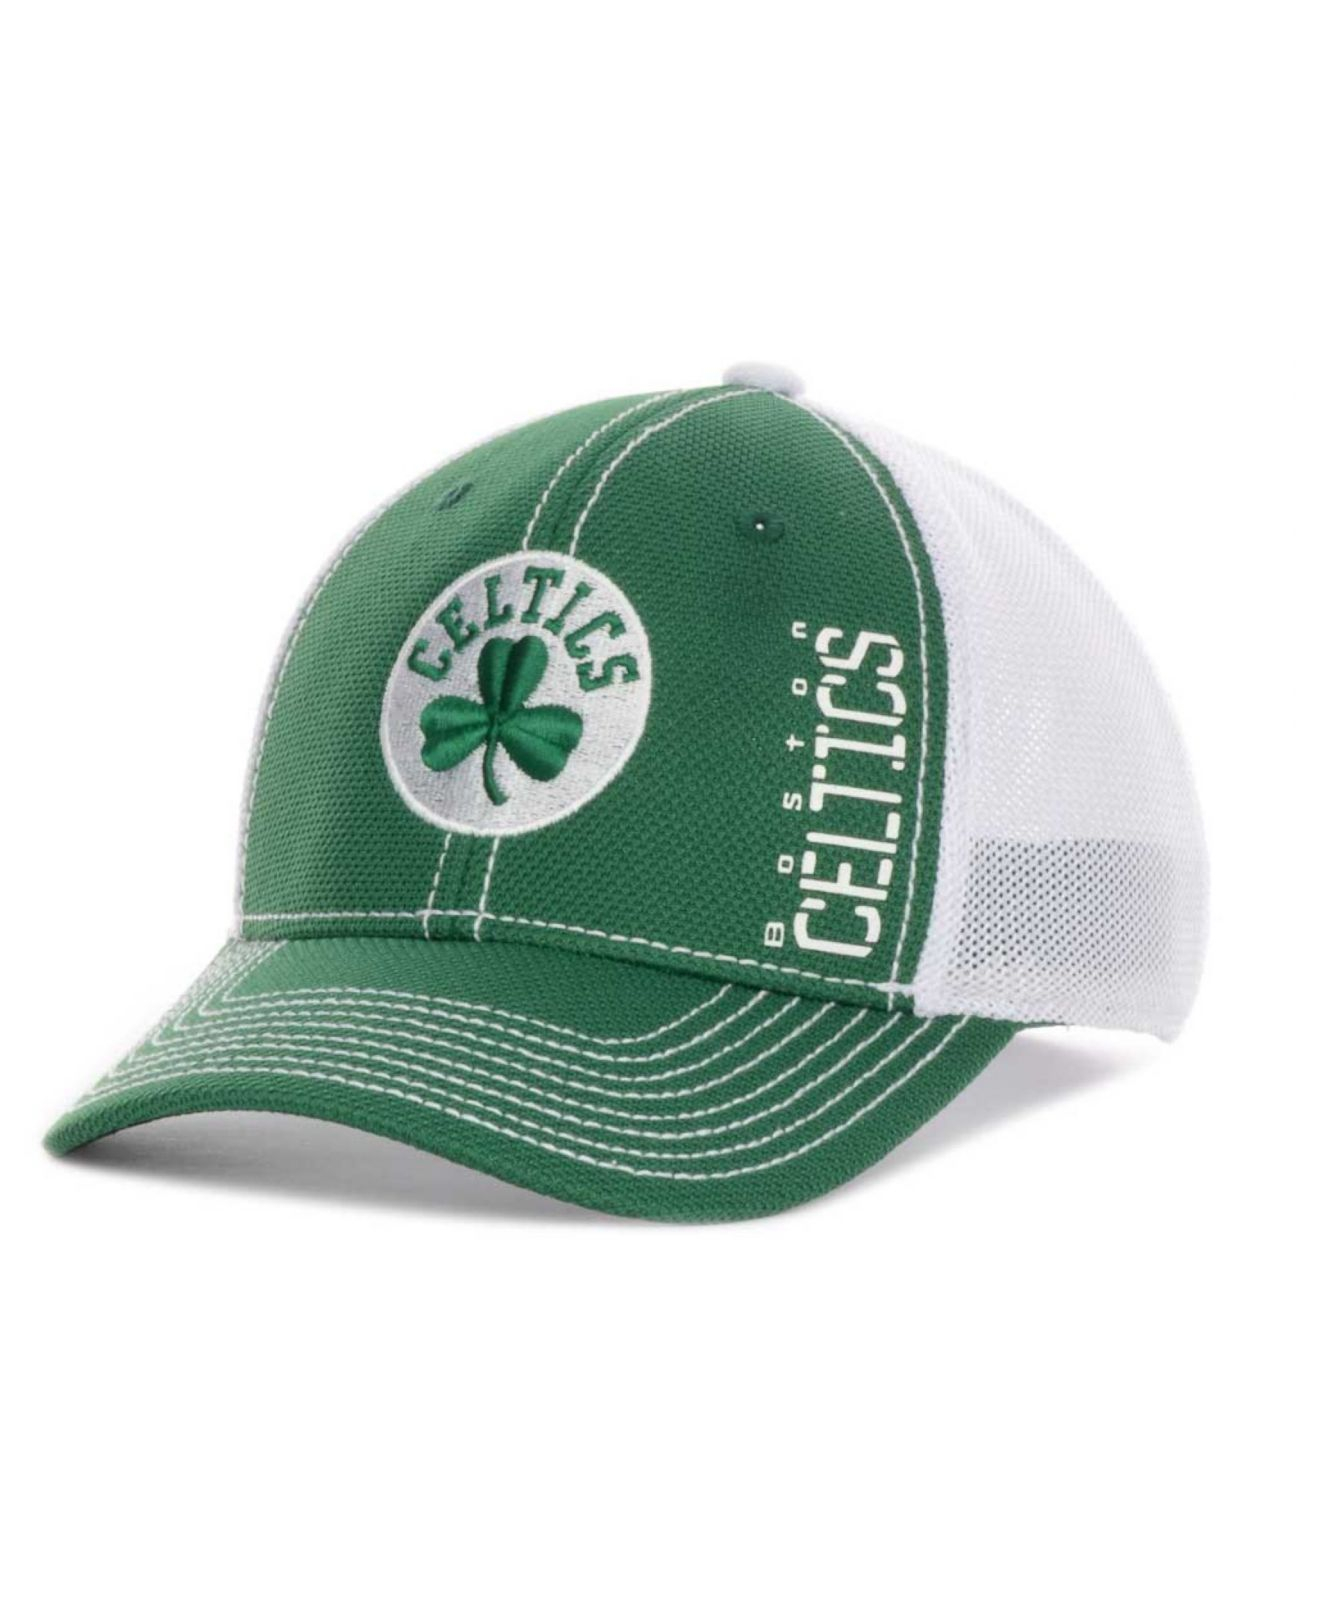 Lyst - Adidas Boston Celtics Nba Zone Mesh Cap in Green ...